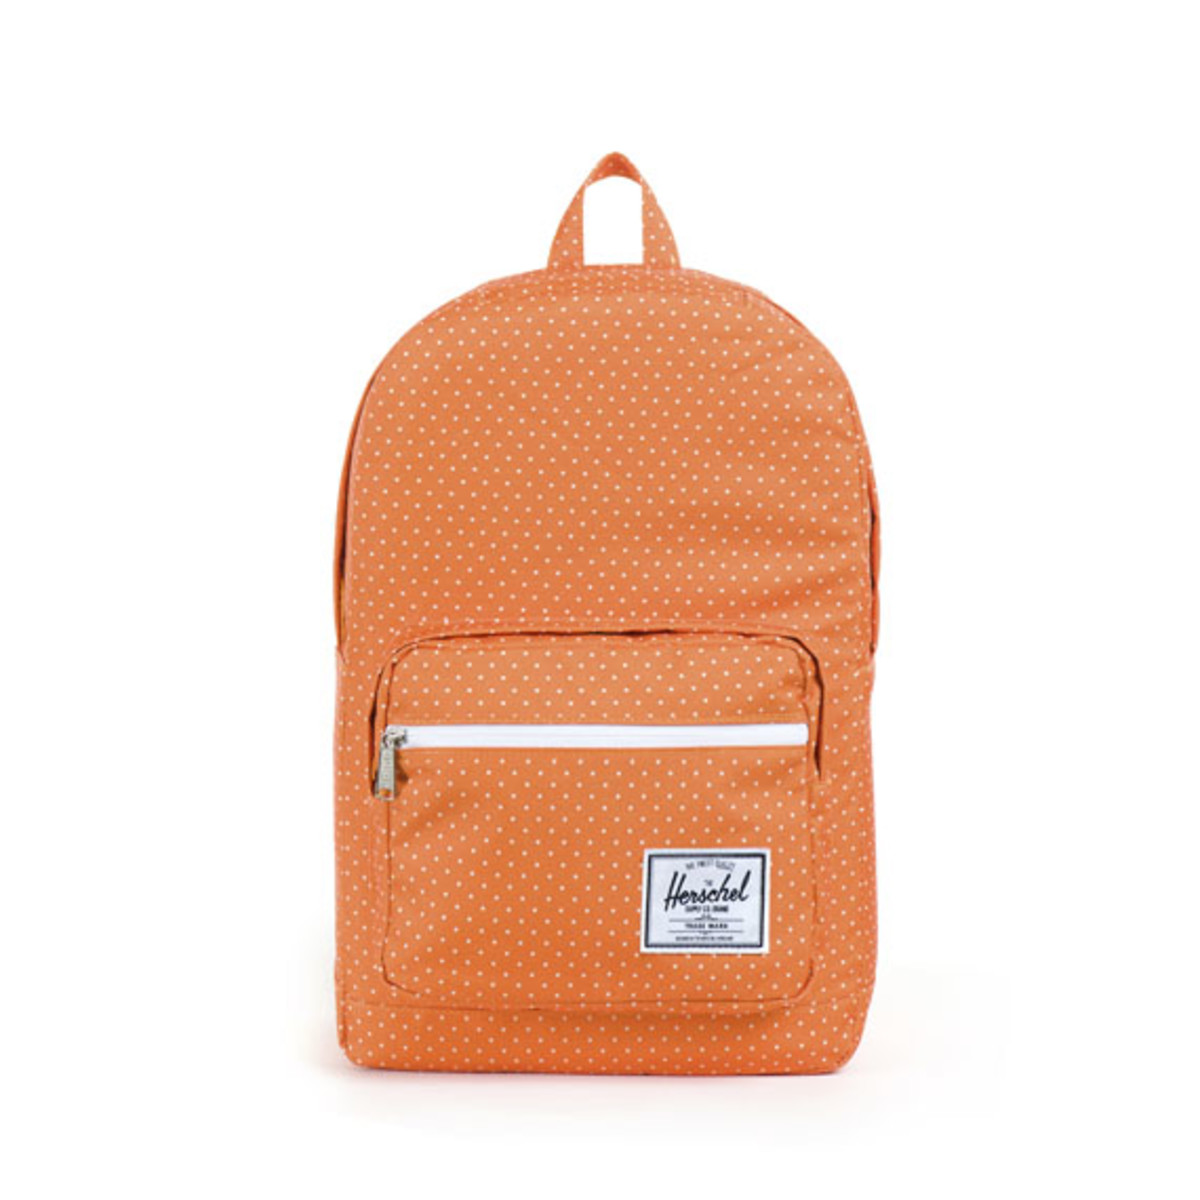 herschel-supply-co-fall-2013-classic-prints-09